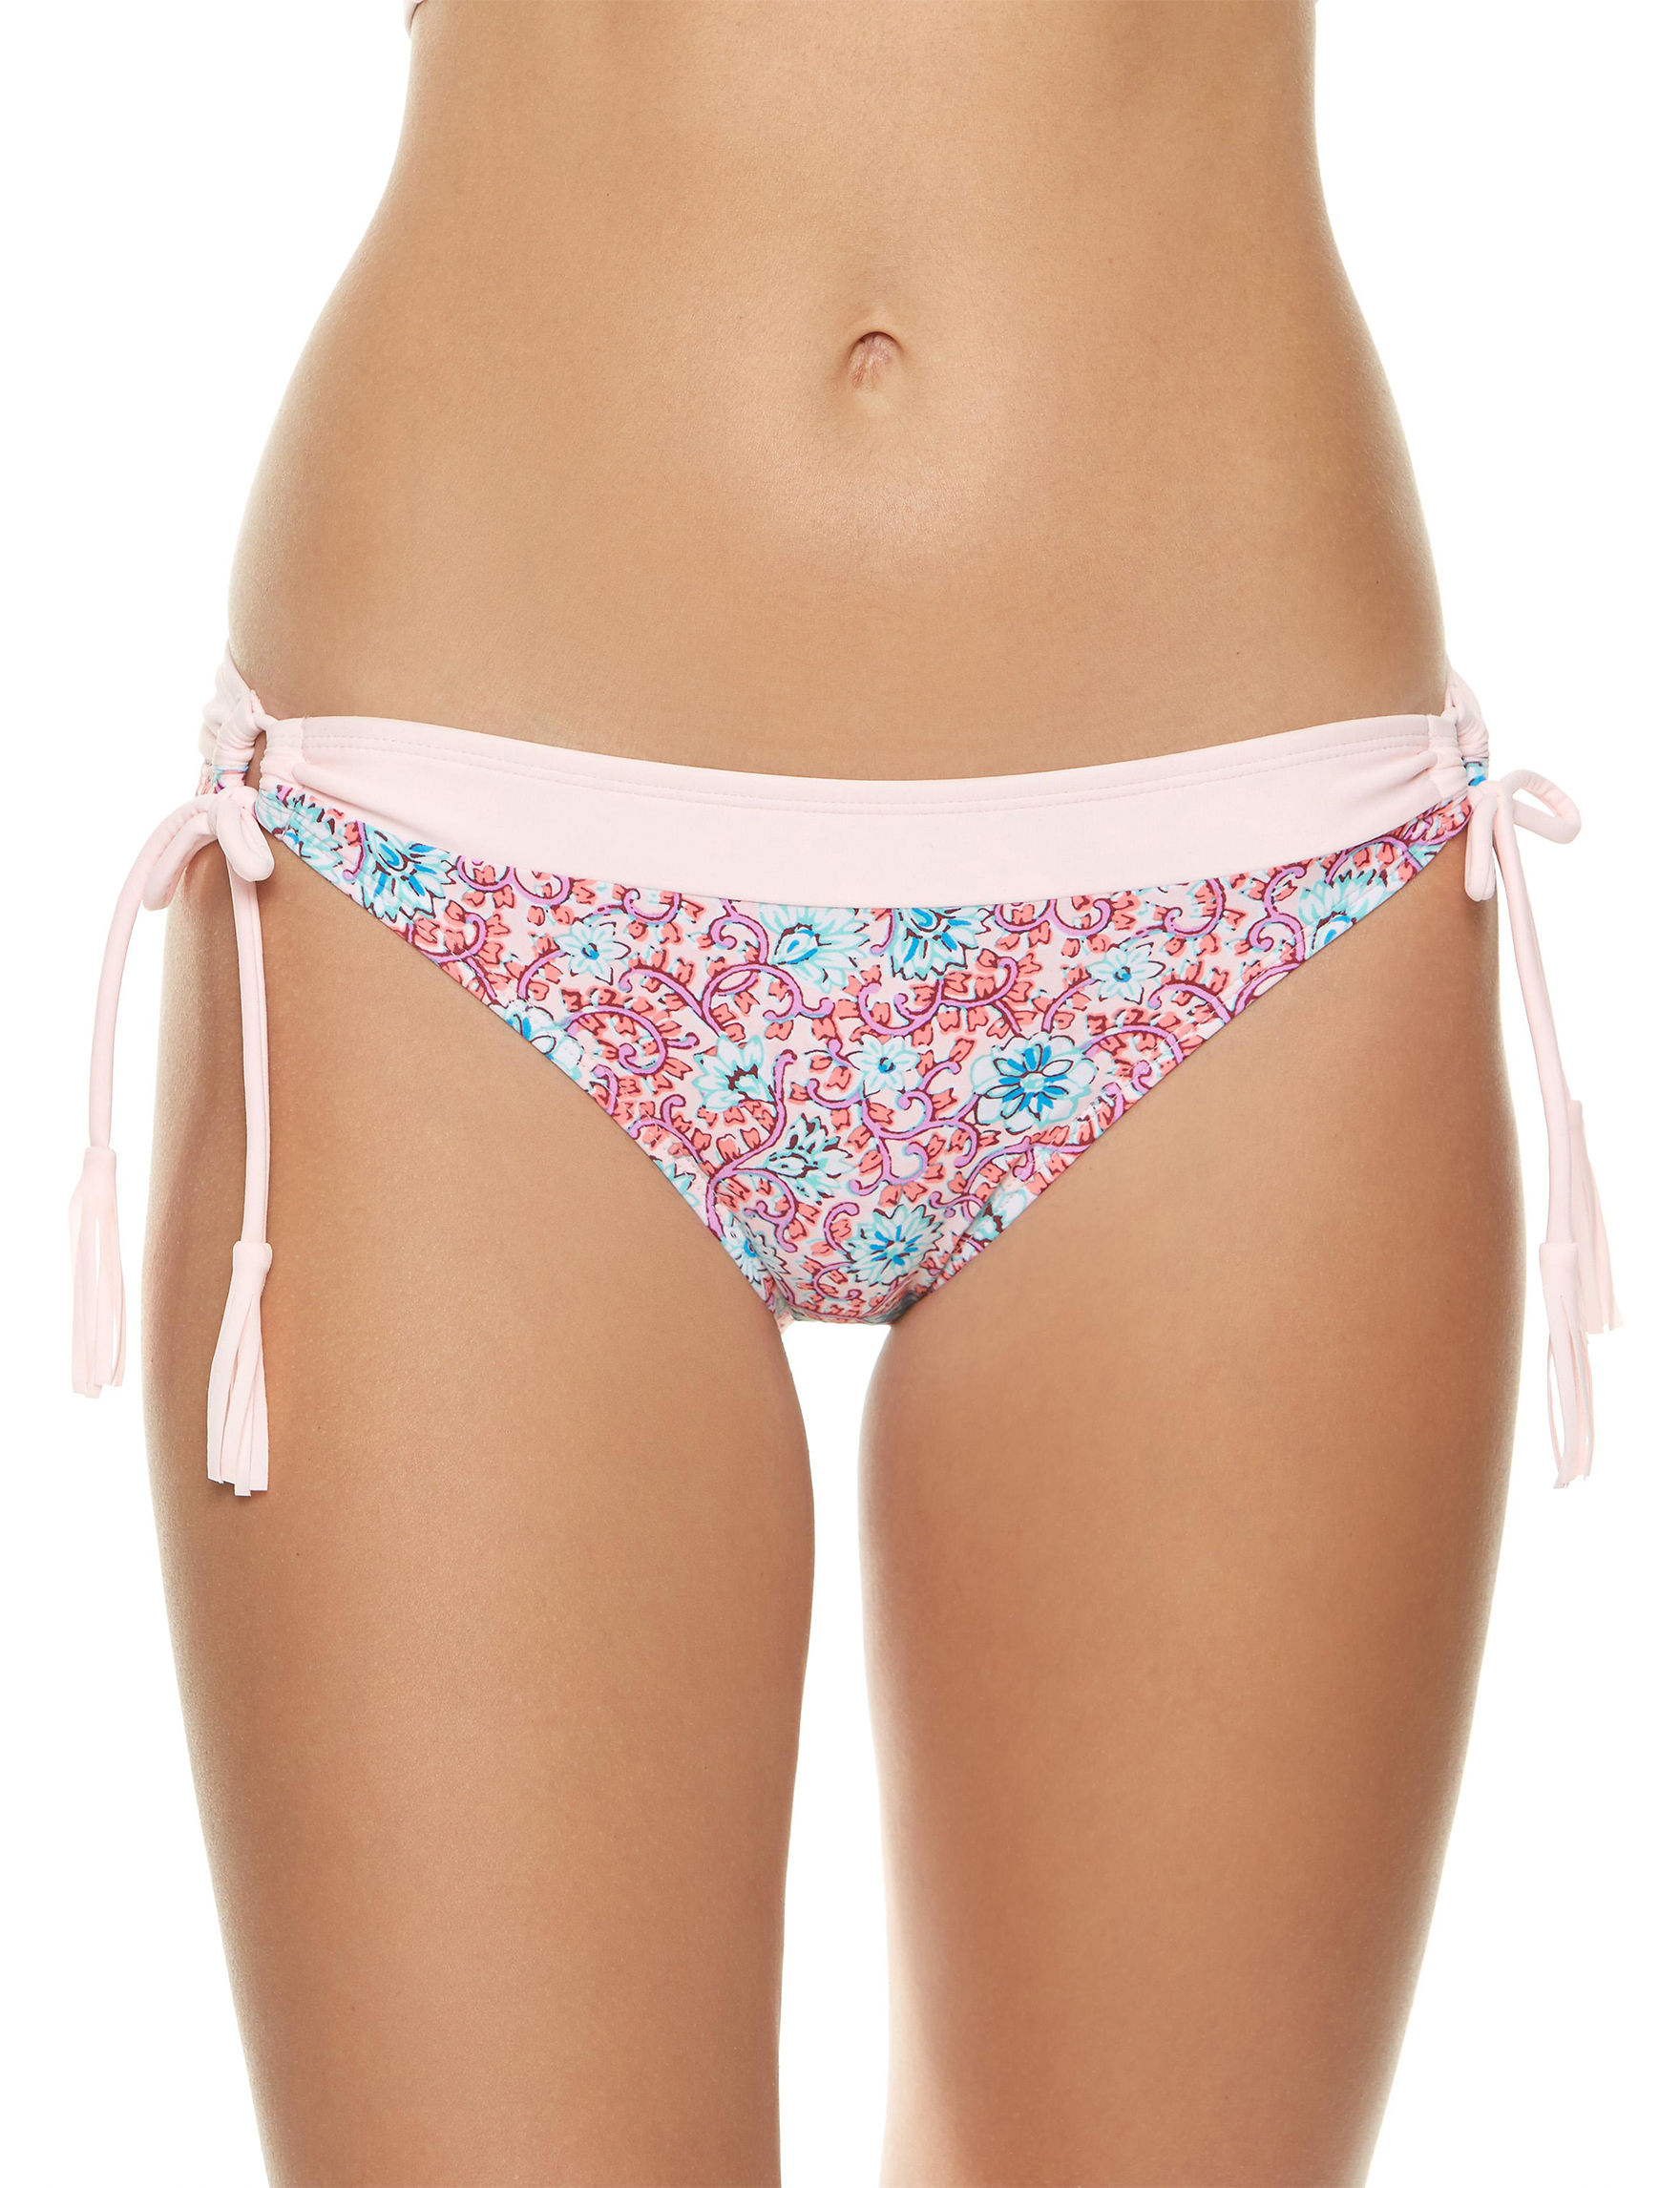 Polka Dot Pink Swimsuit Bottoms Hipster